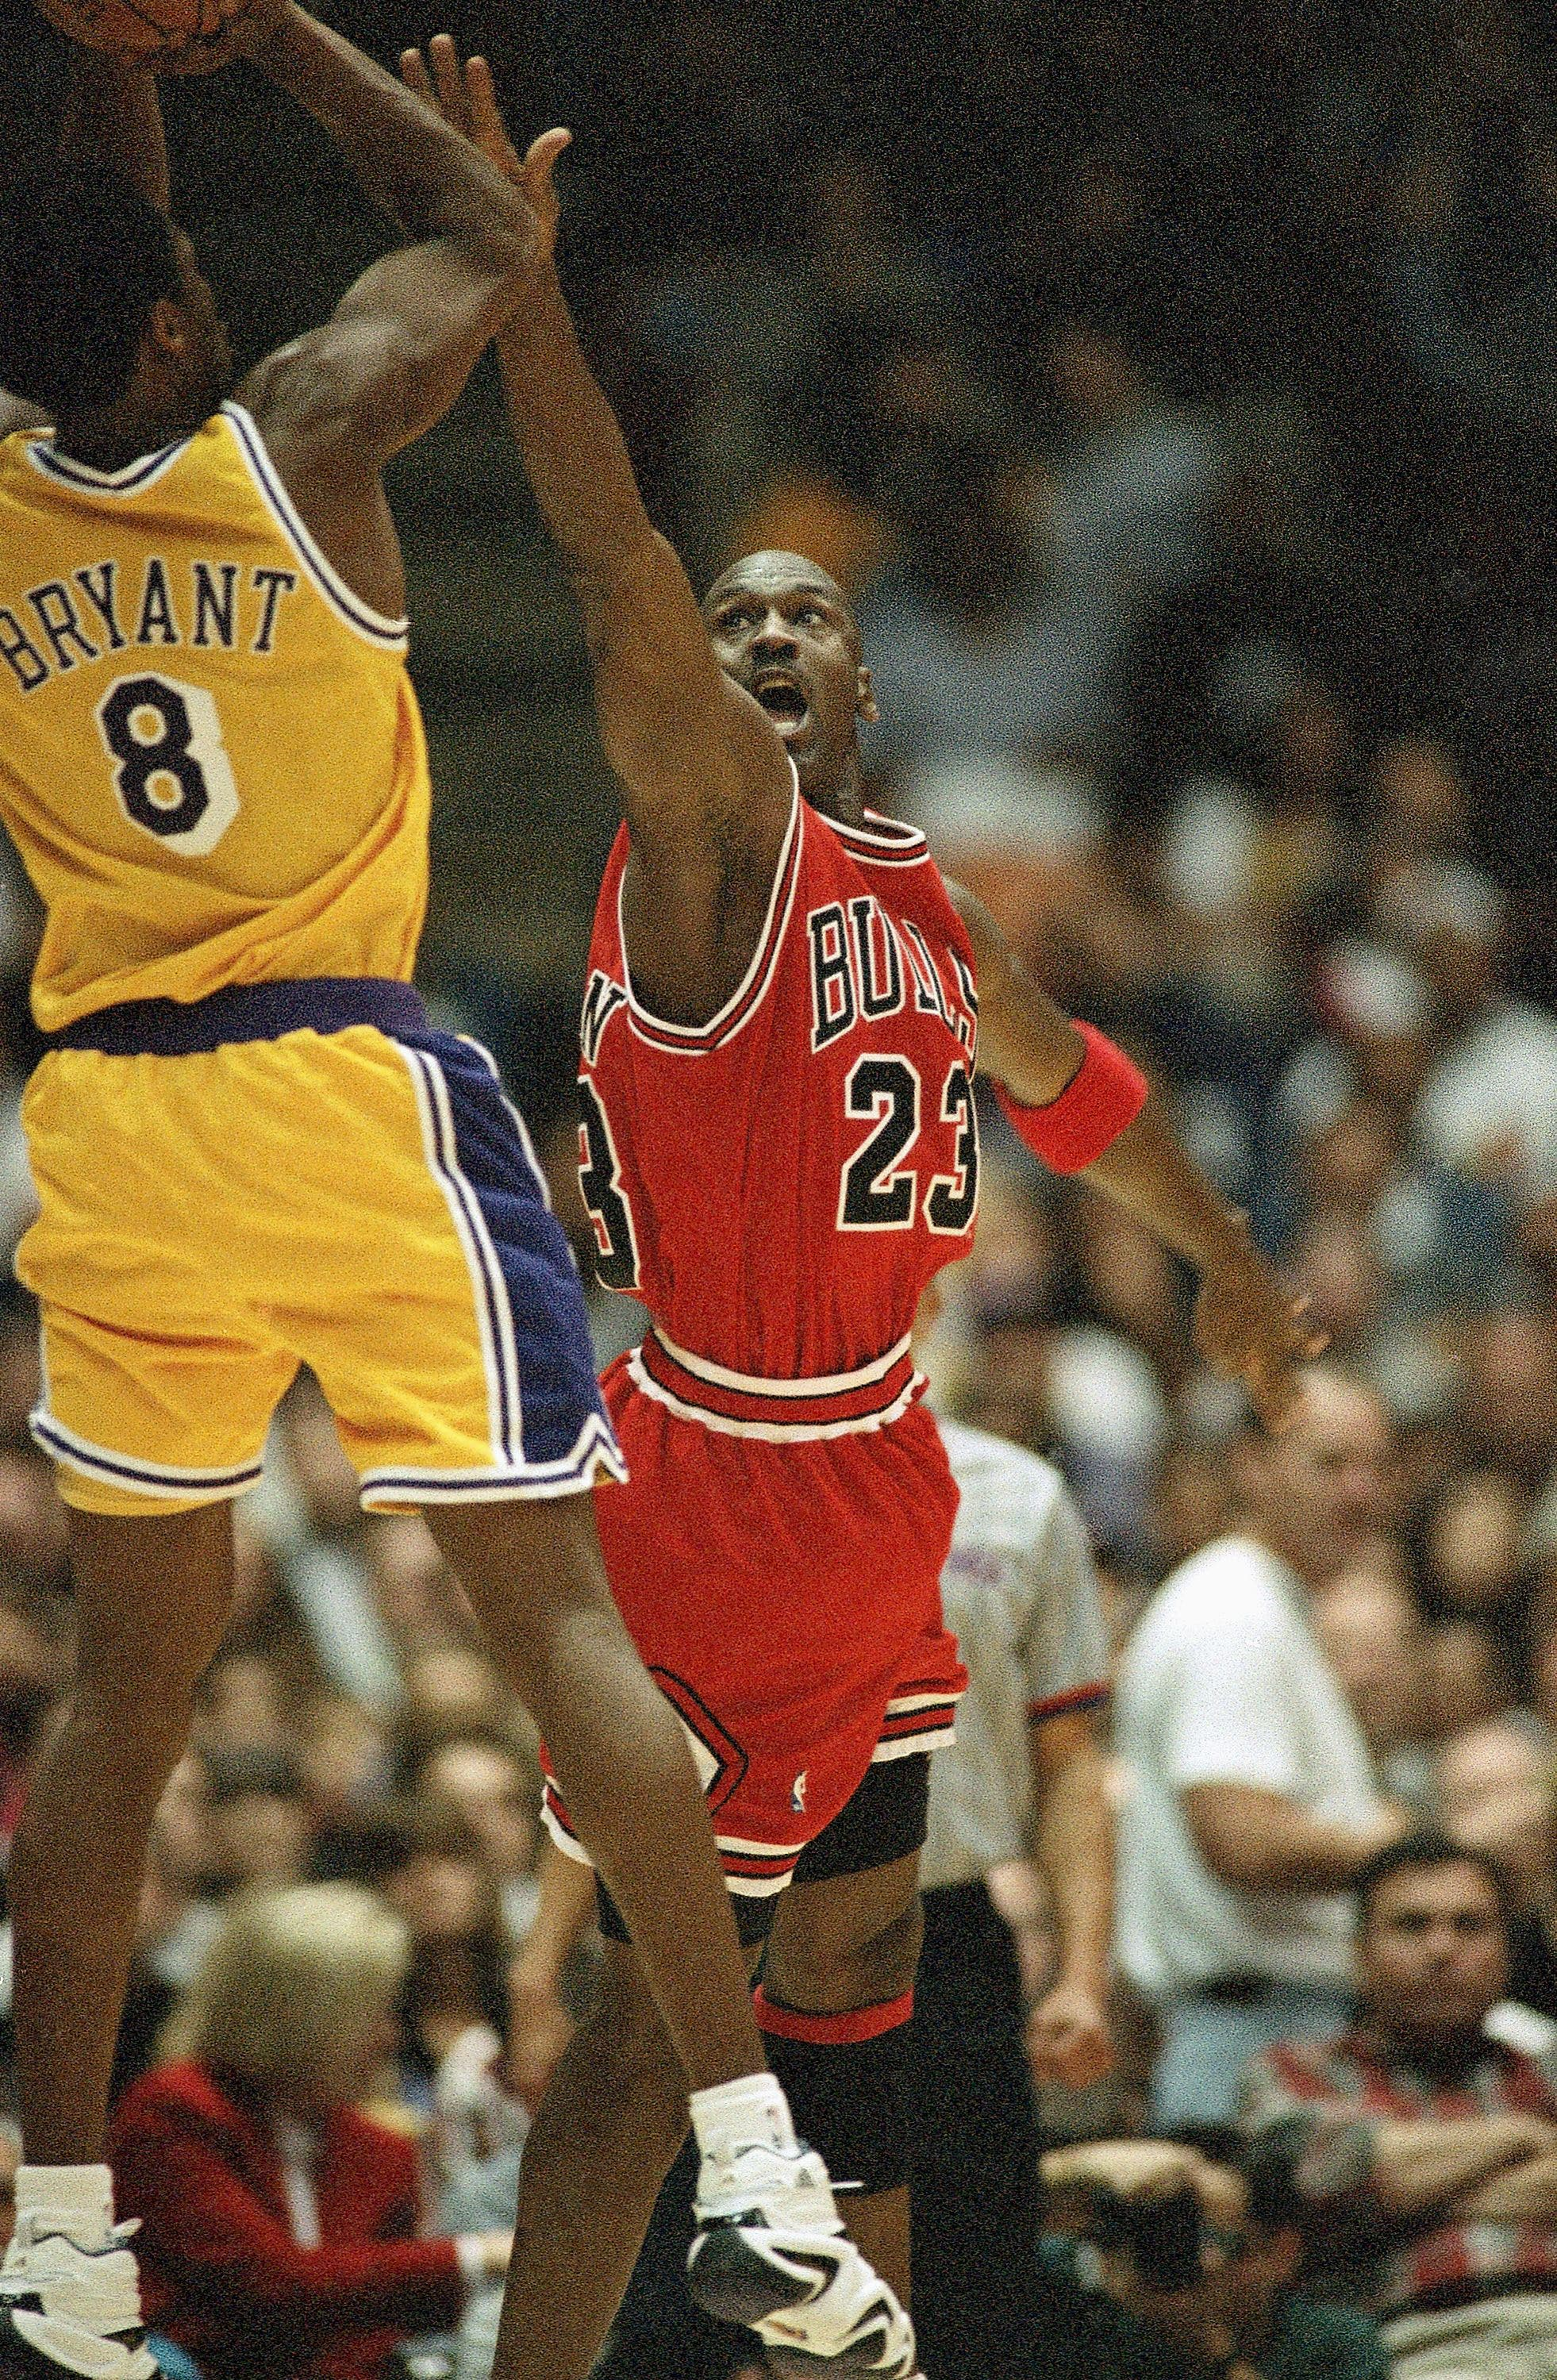 Chicago Bulls Michael Jordan (23) reaches to defend against Los Angeles Lakers Kobe Bryant (8) during the second quarter action, Feb. 1, 1998. (AP)